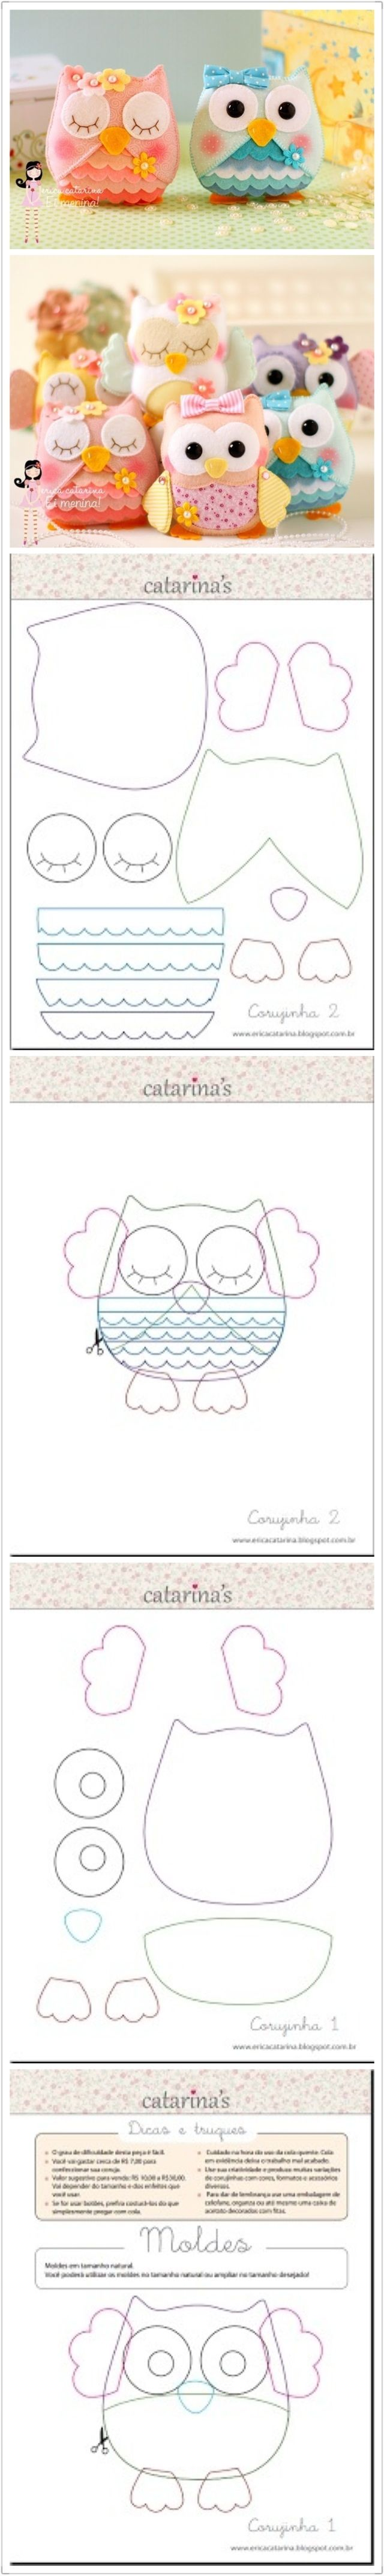 Owl Cookie Tutorial!  Oh my gosh, these are adorable!!!